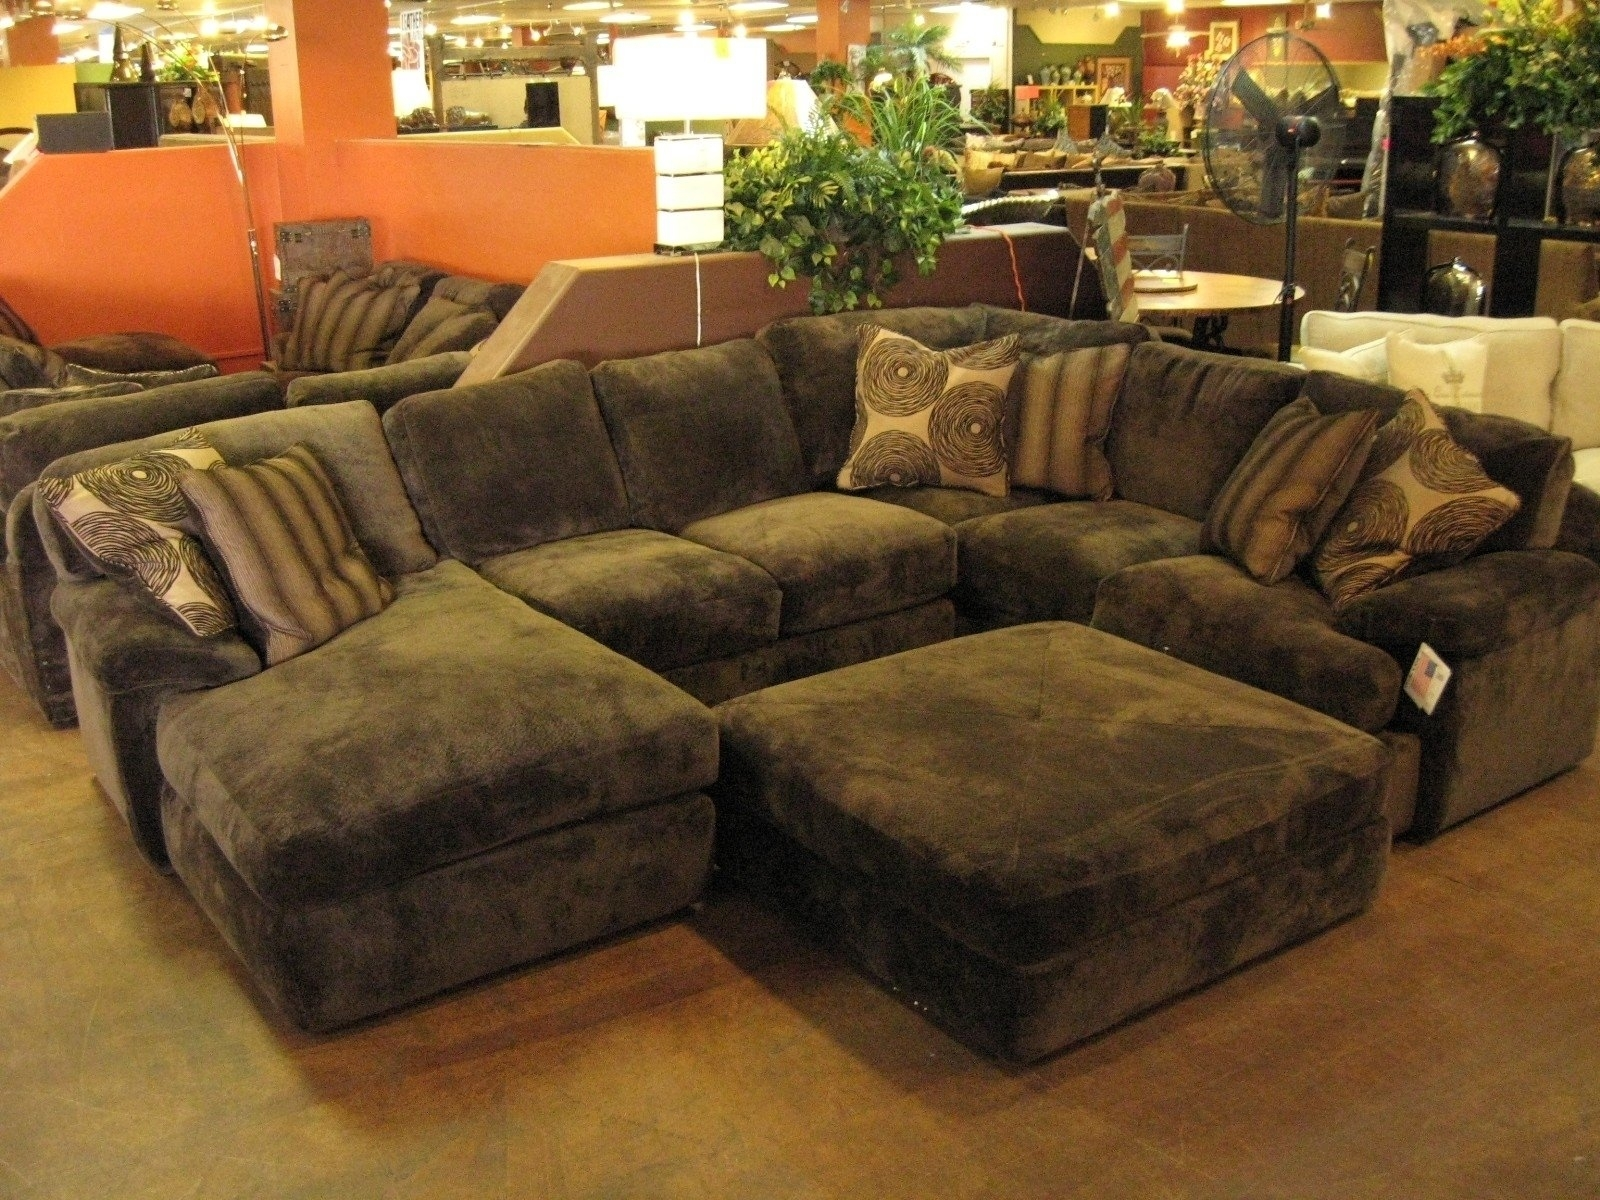 Interior Luxury Oversized Sectional Sofa For Awesome Living Room For Oversized Sectional Sofas (View 5 of 10)